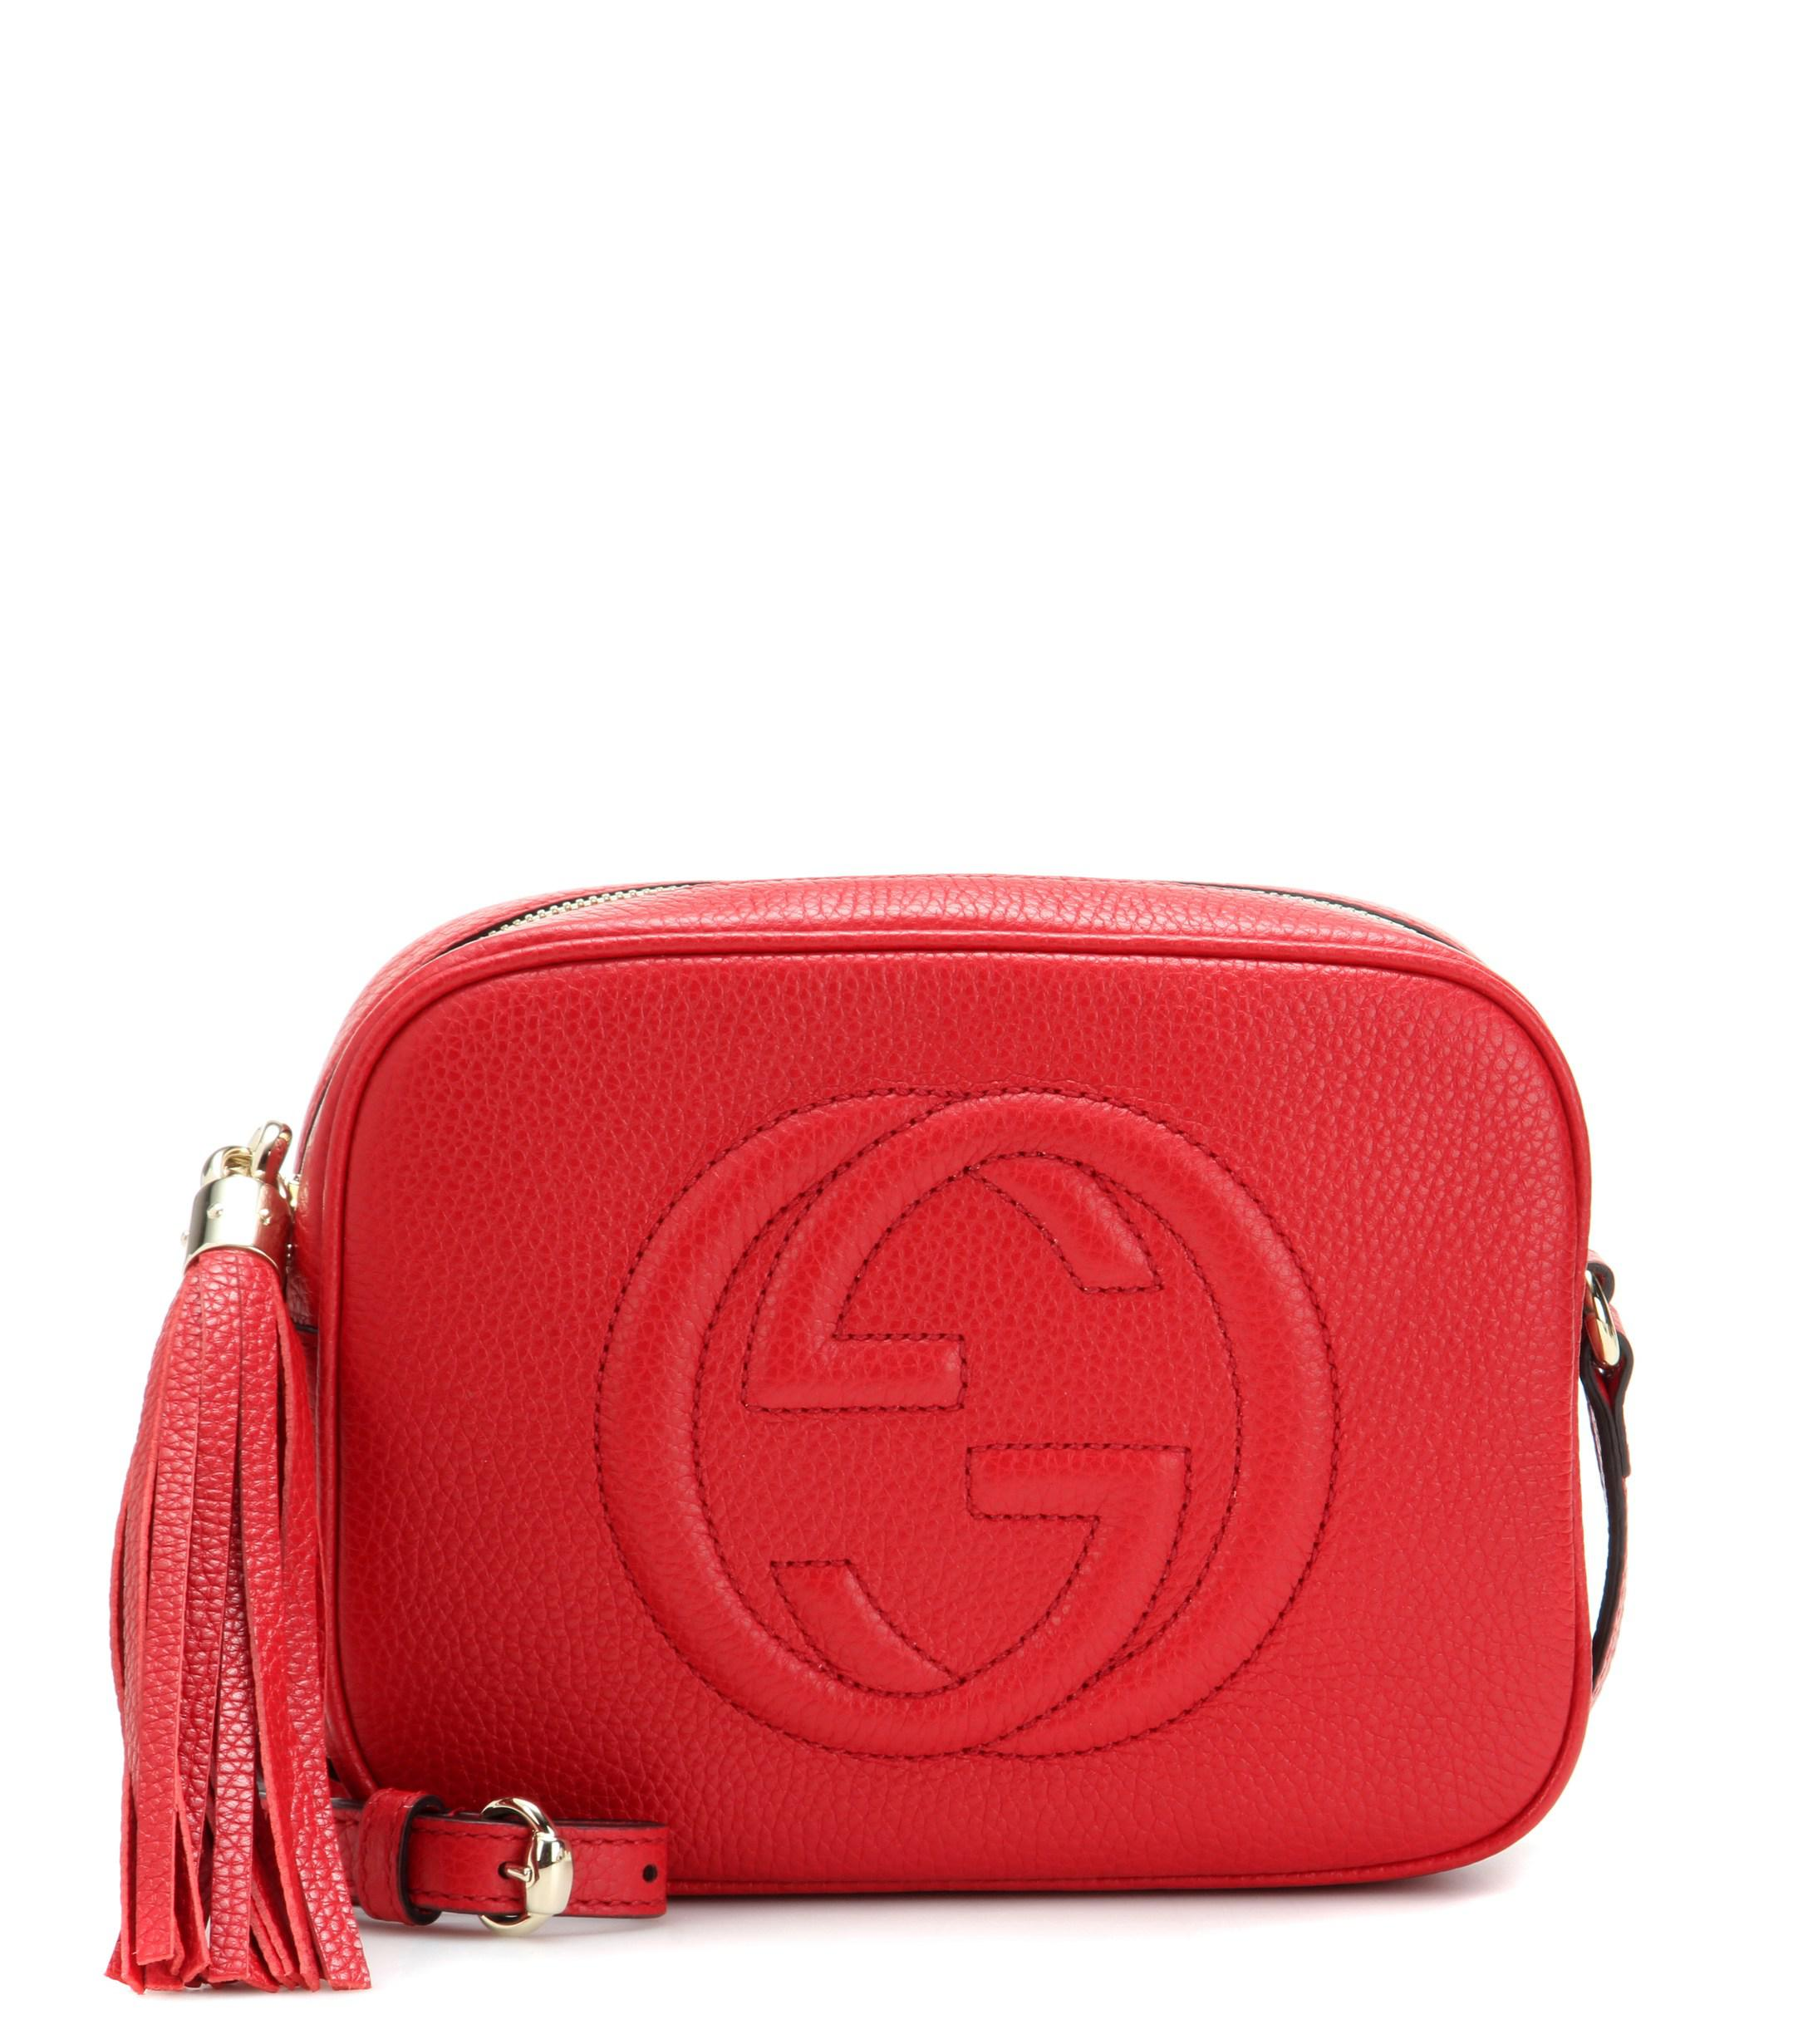 f21982c280ac Lyst - Gucci Soho Disco Leather Shoulder Bag in Red